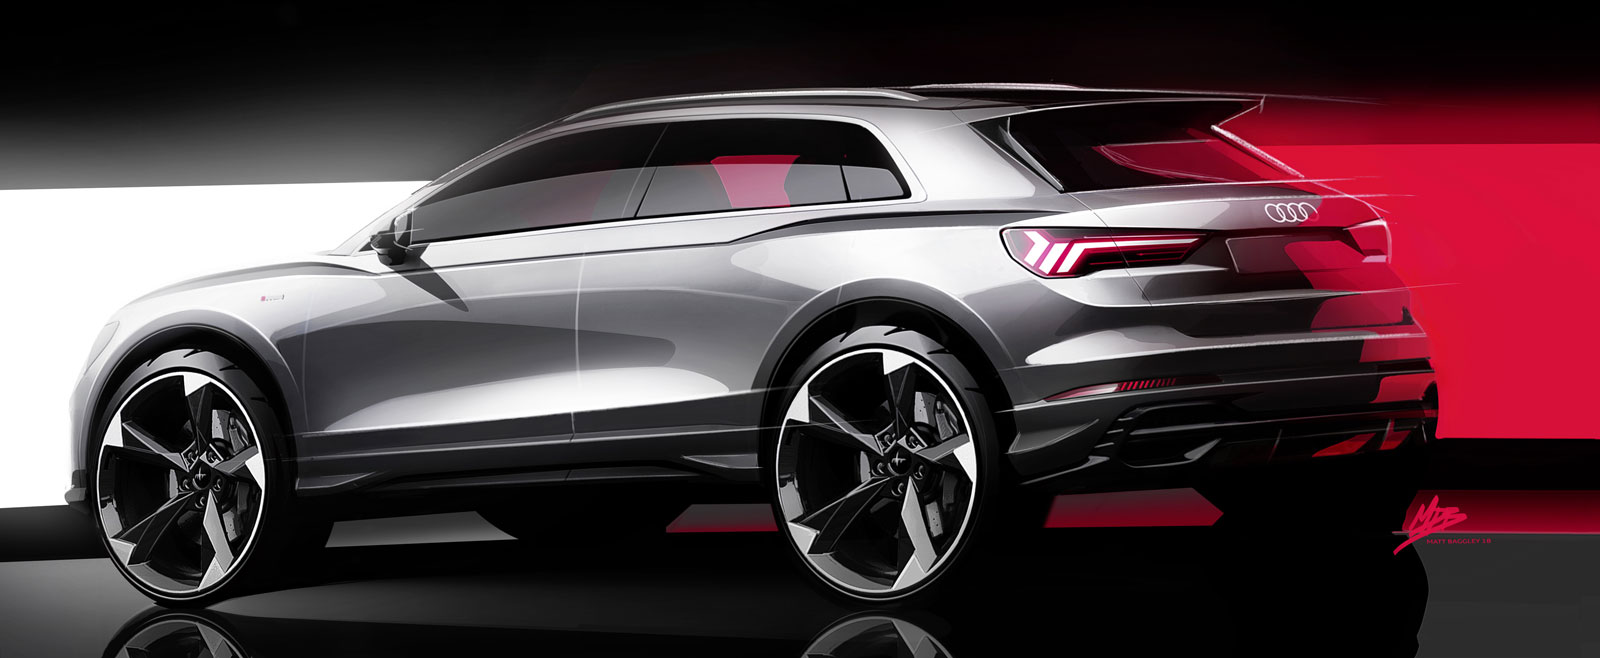 Audi Q3 Design Sketch Render